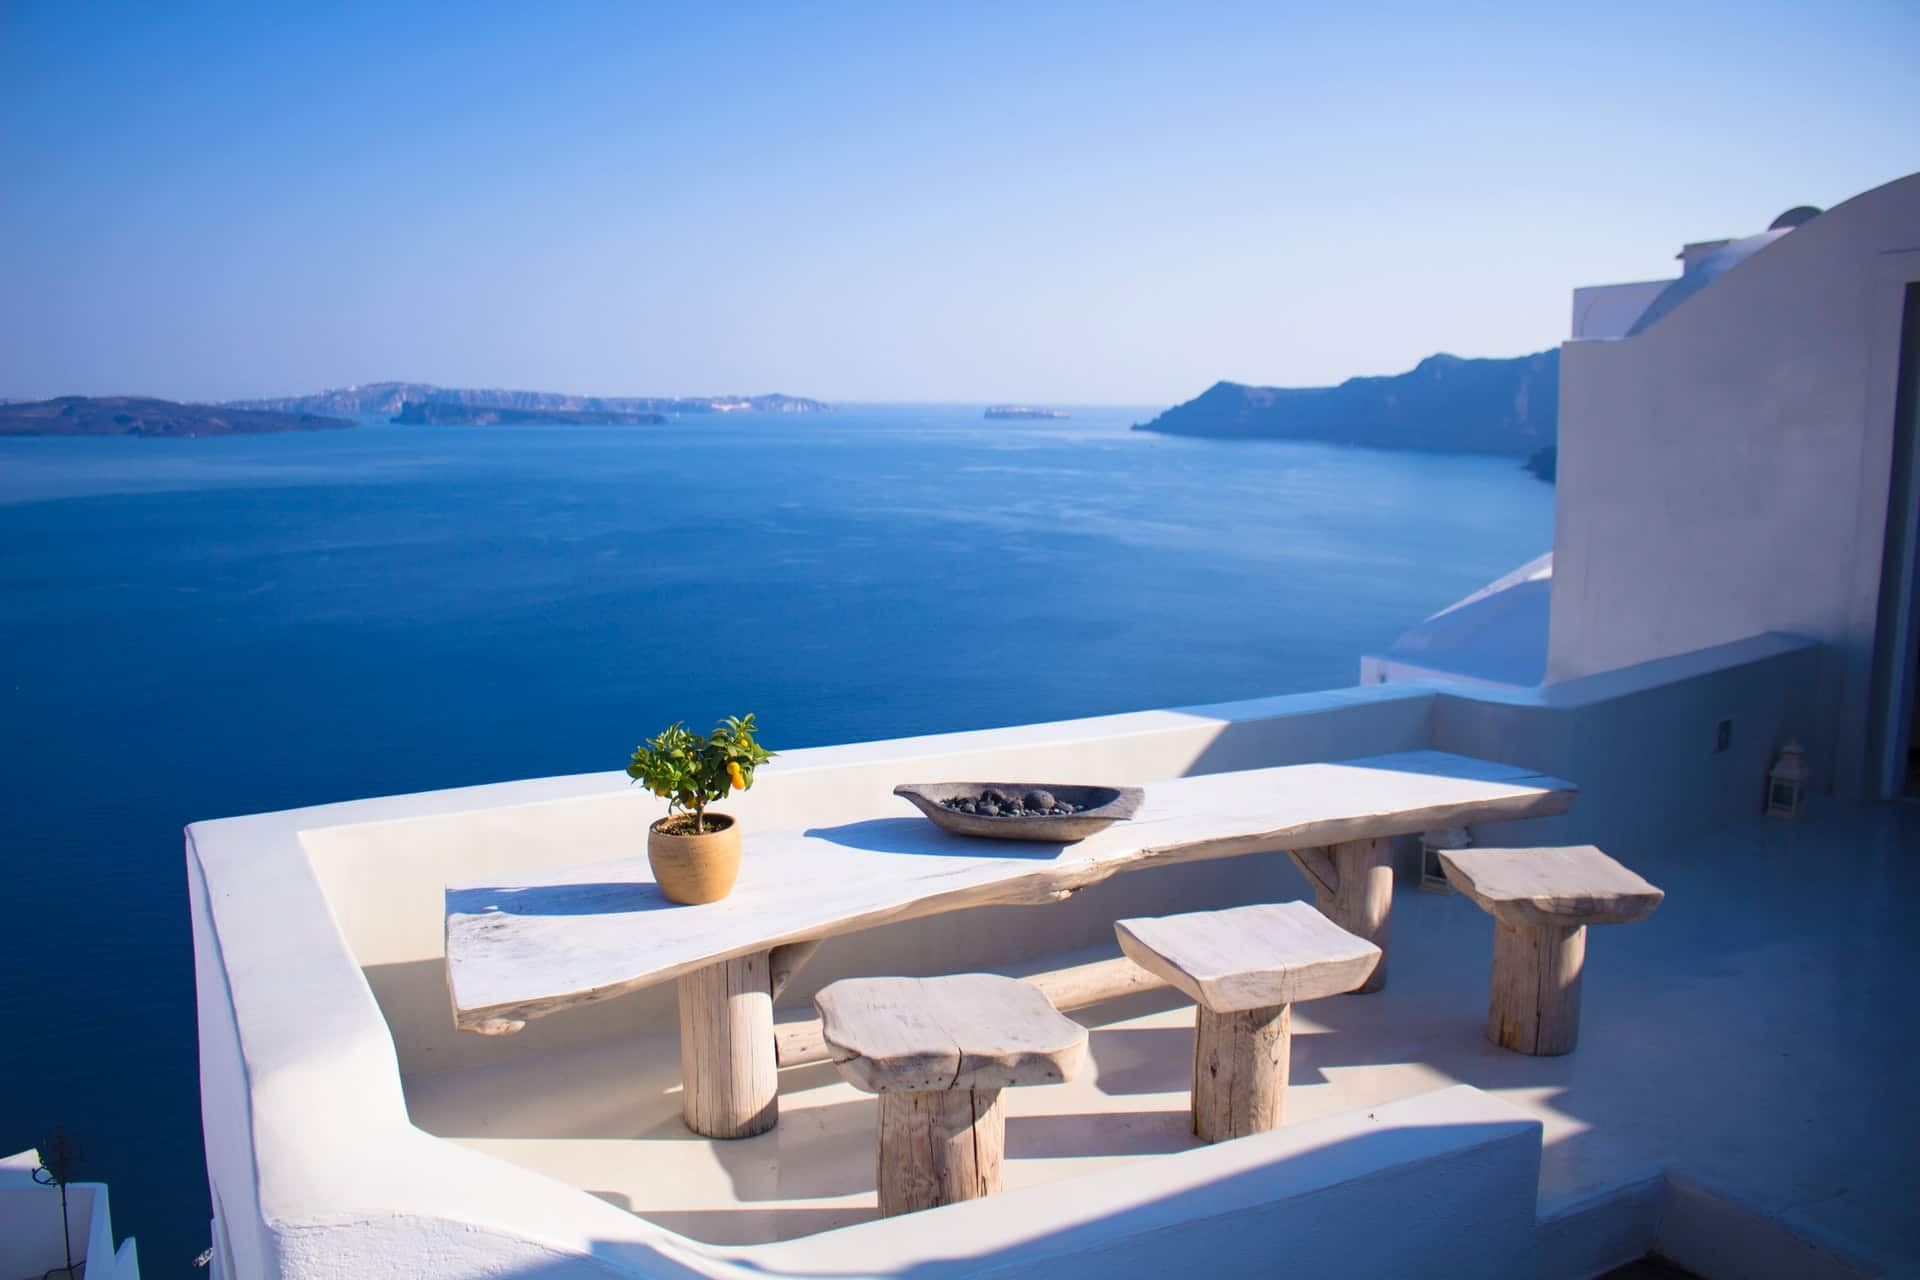 Top 5 Best Holiday Destinations in Europe